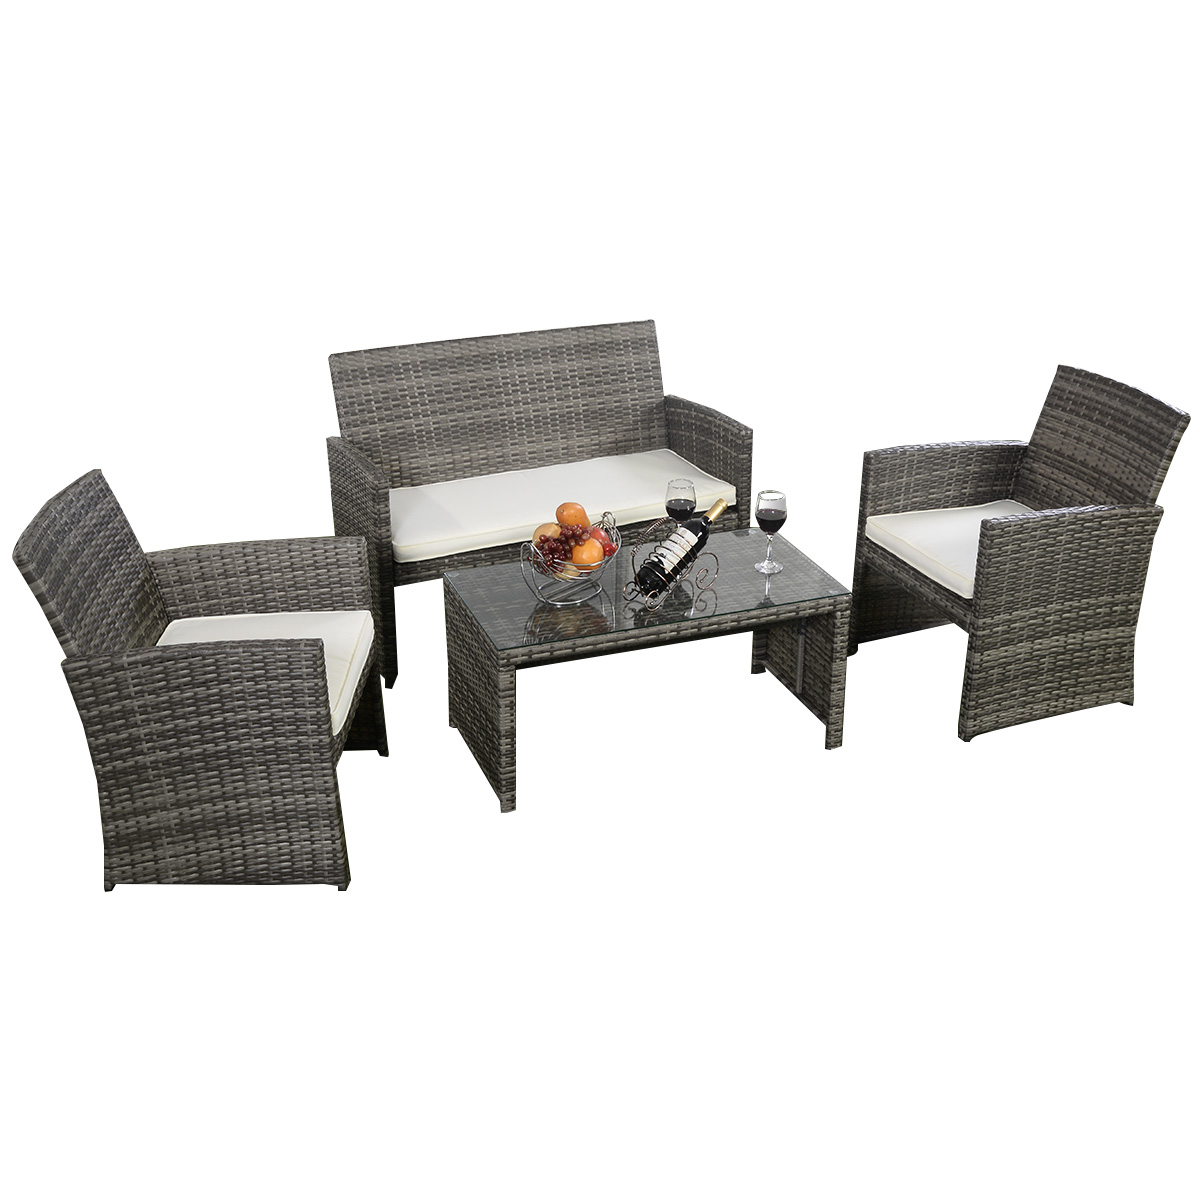 Costway 4 Pc Rattan Patio Furniture Set Garden Lawn Sofa Cushioned Seat Mix Gray Wicker by Wicker Furniture